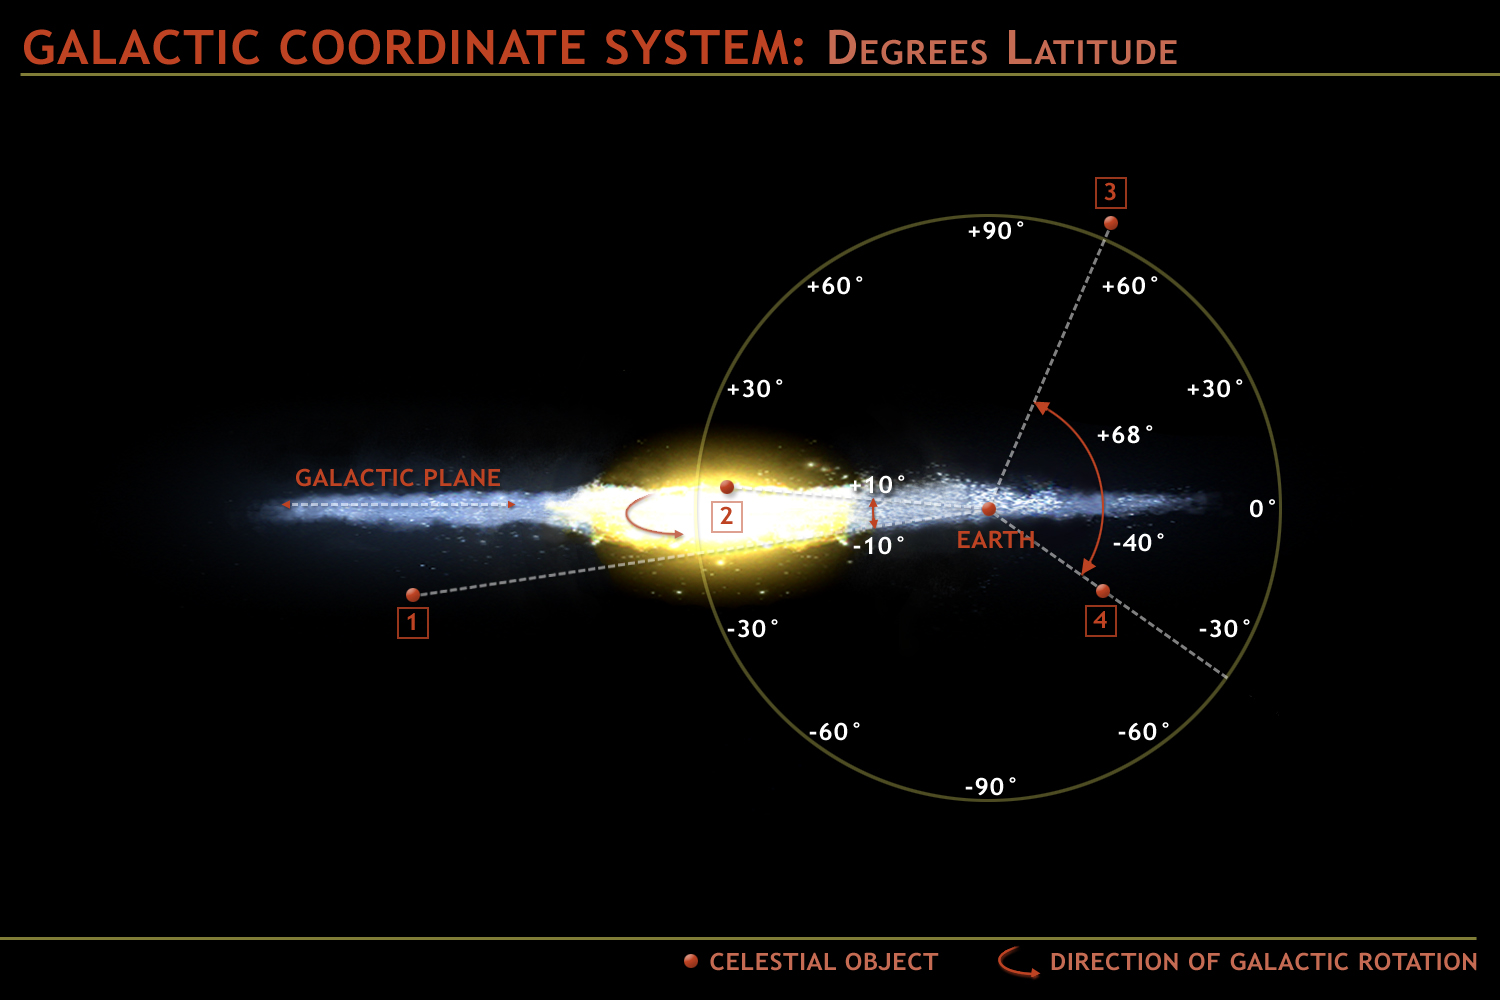 galactic coordinate system showing latitudes of earth and the galactic plane